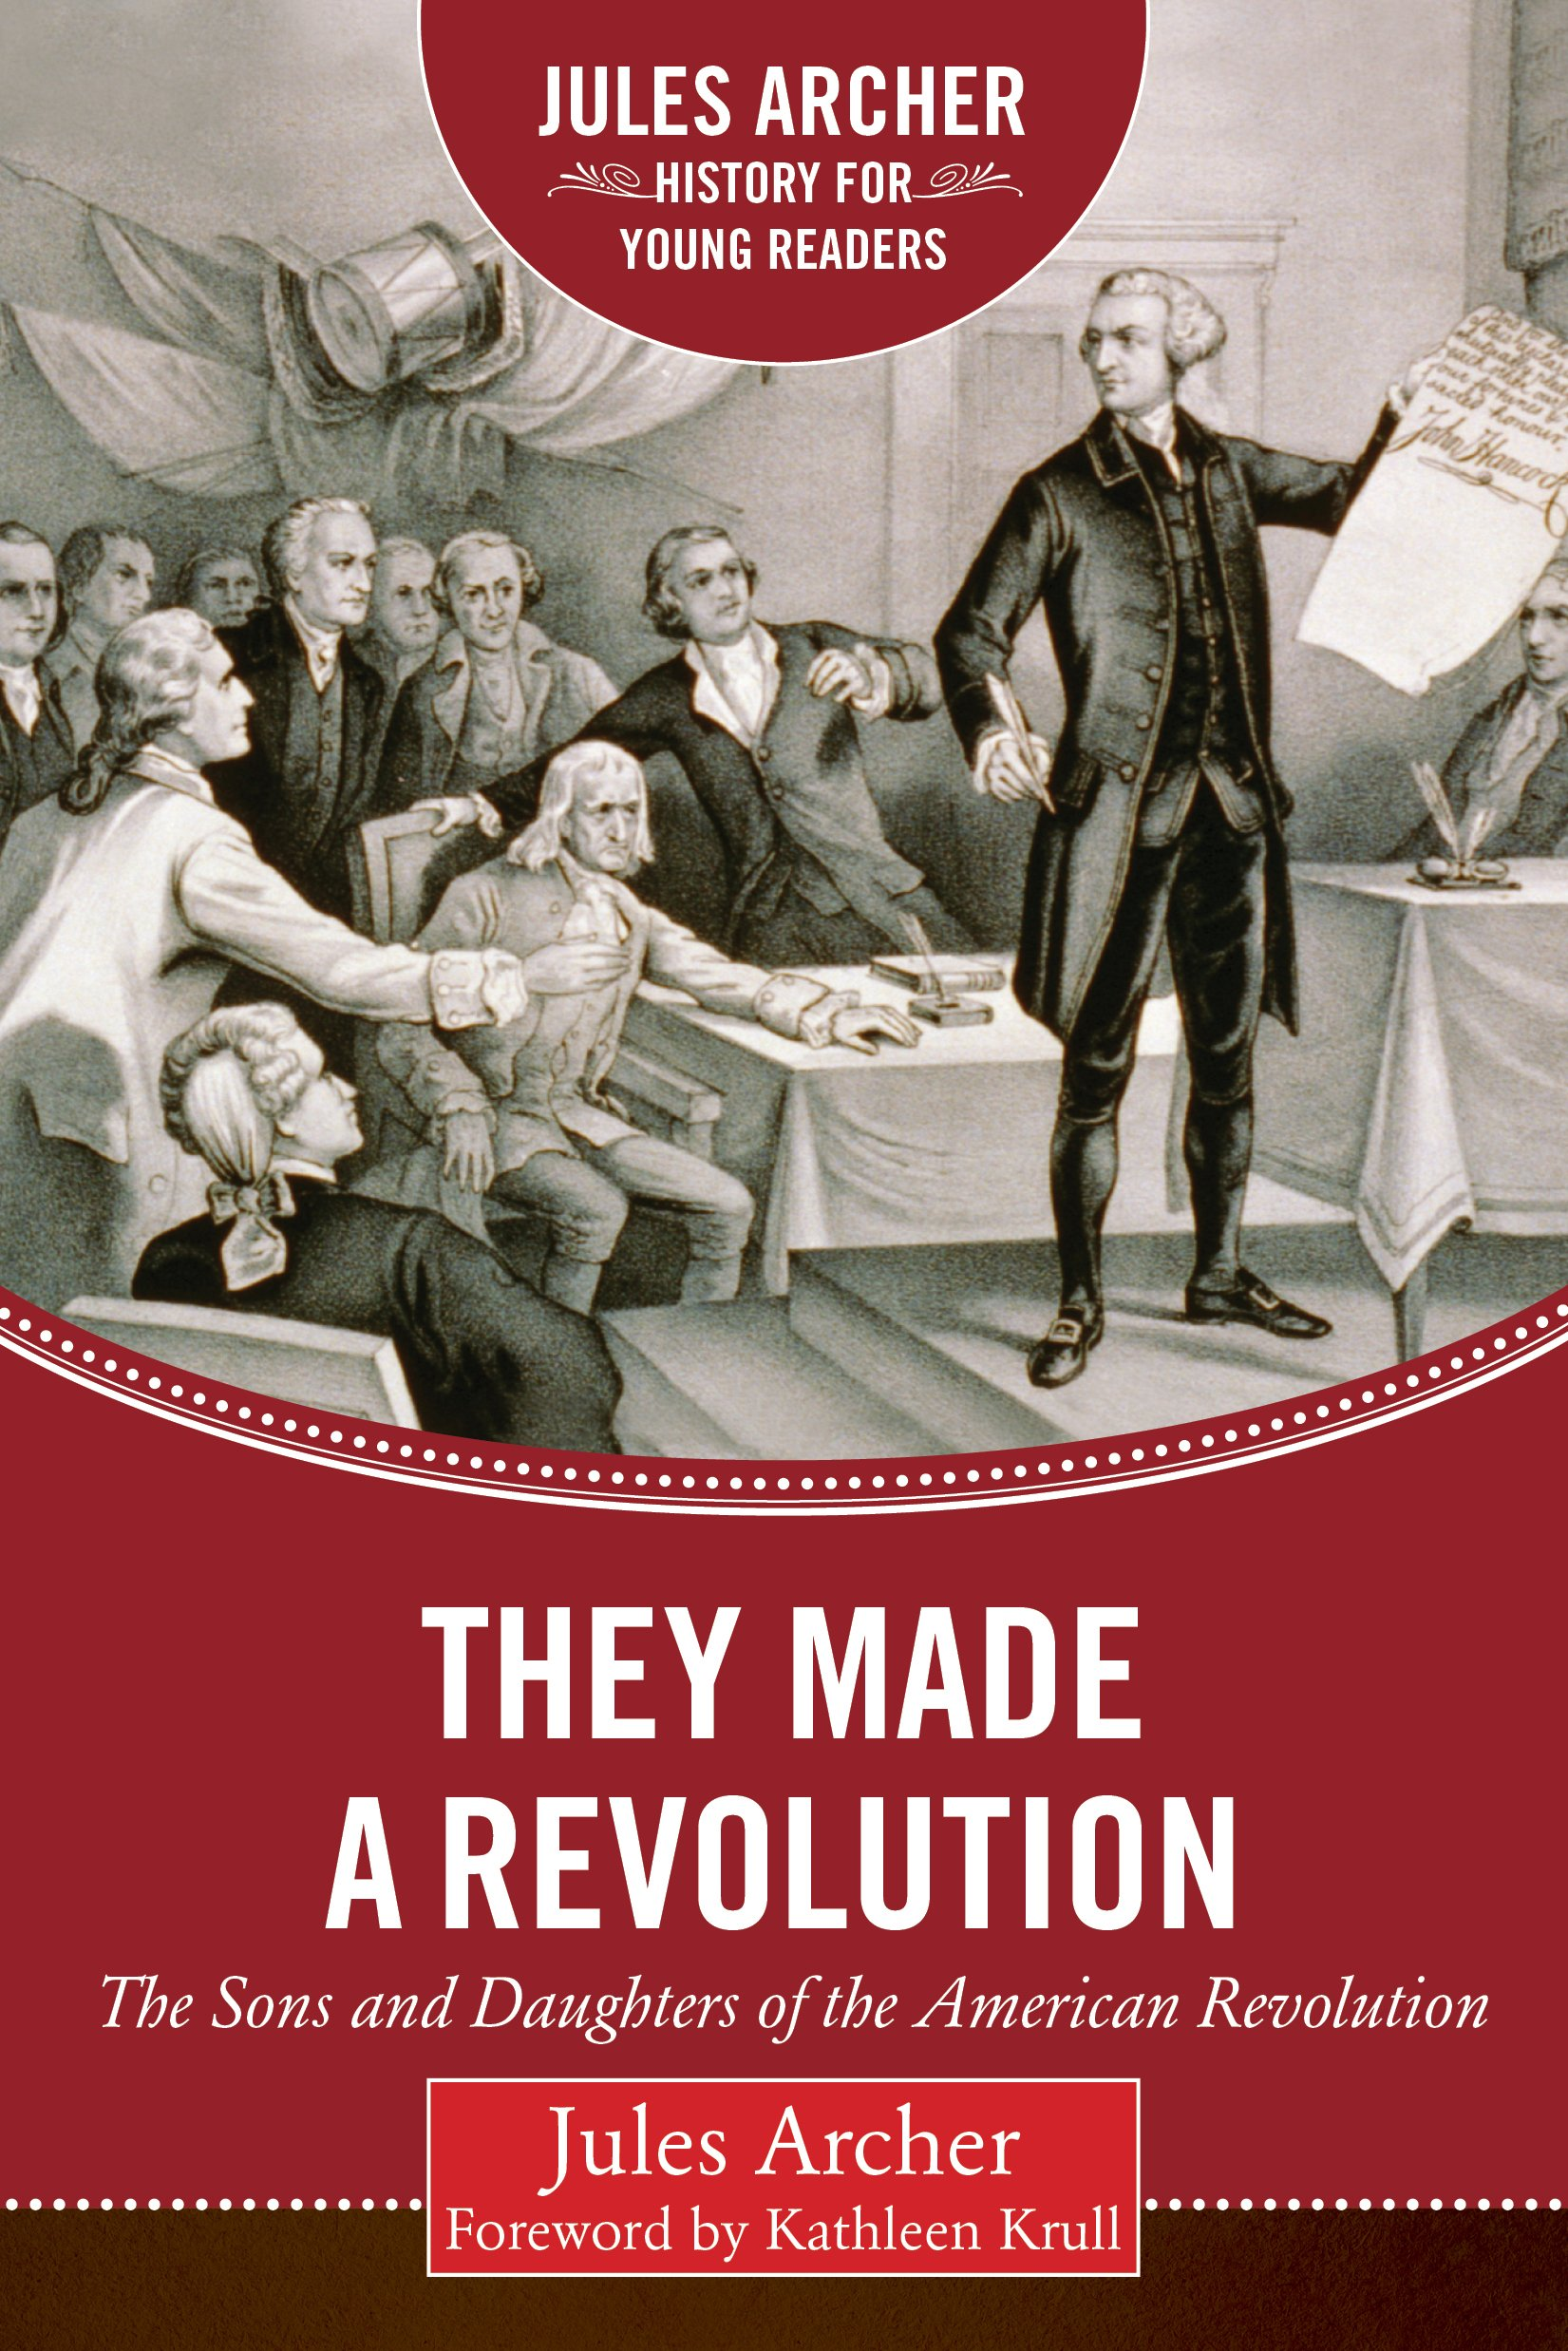 They Made a Revolution: The Sons and Daughters of the American Revolution (Jules Archer History for Young Readers)